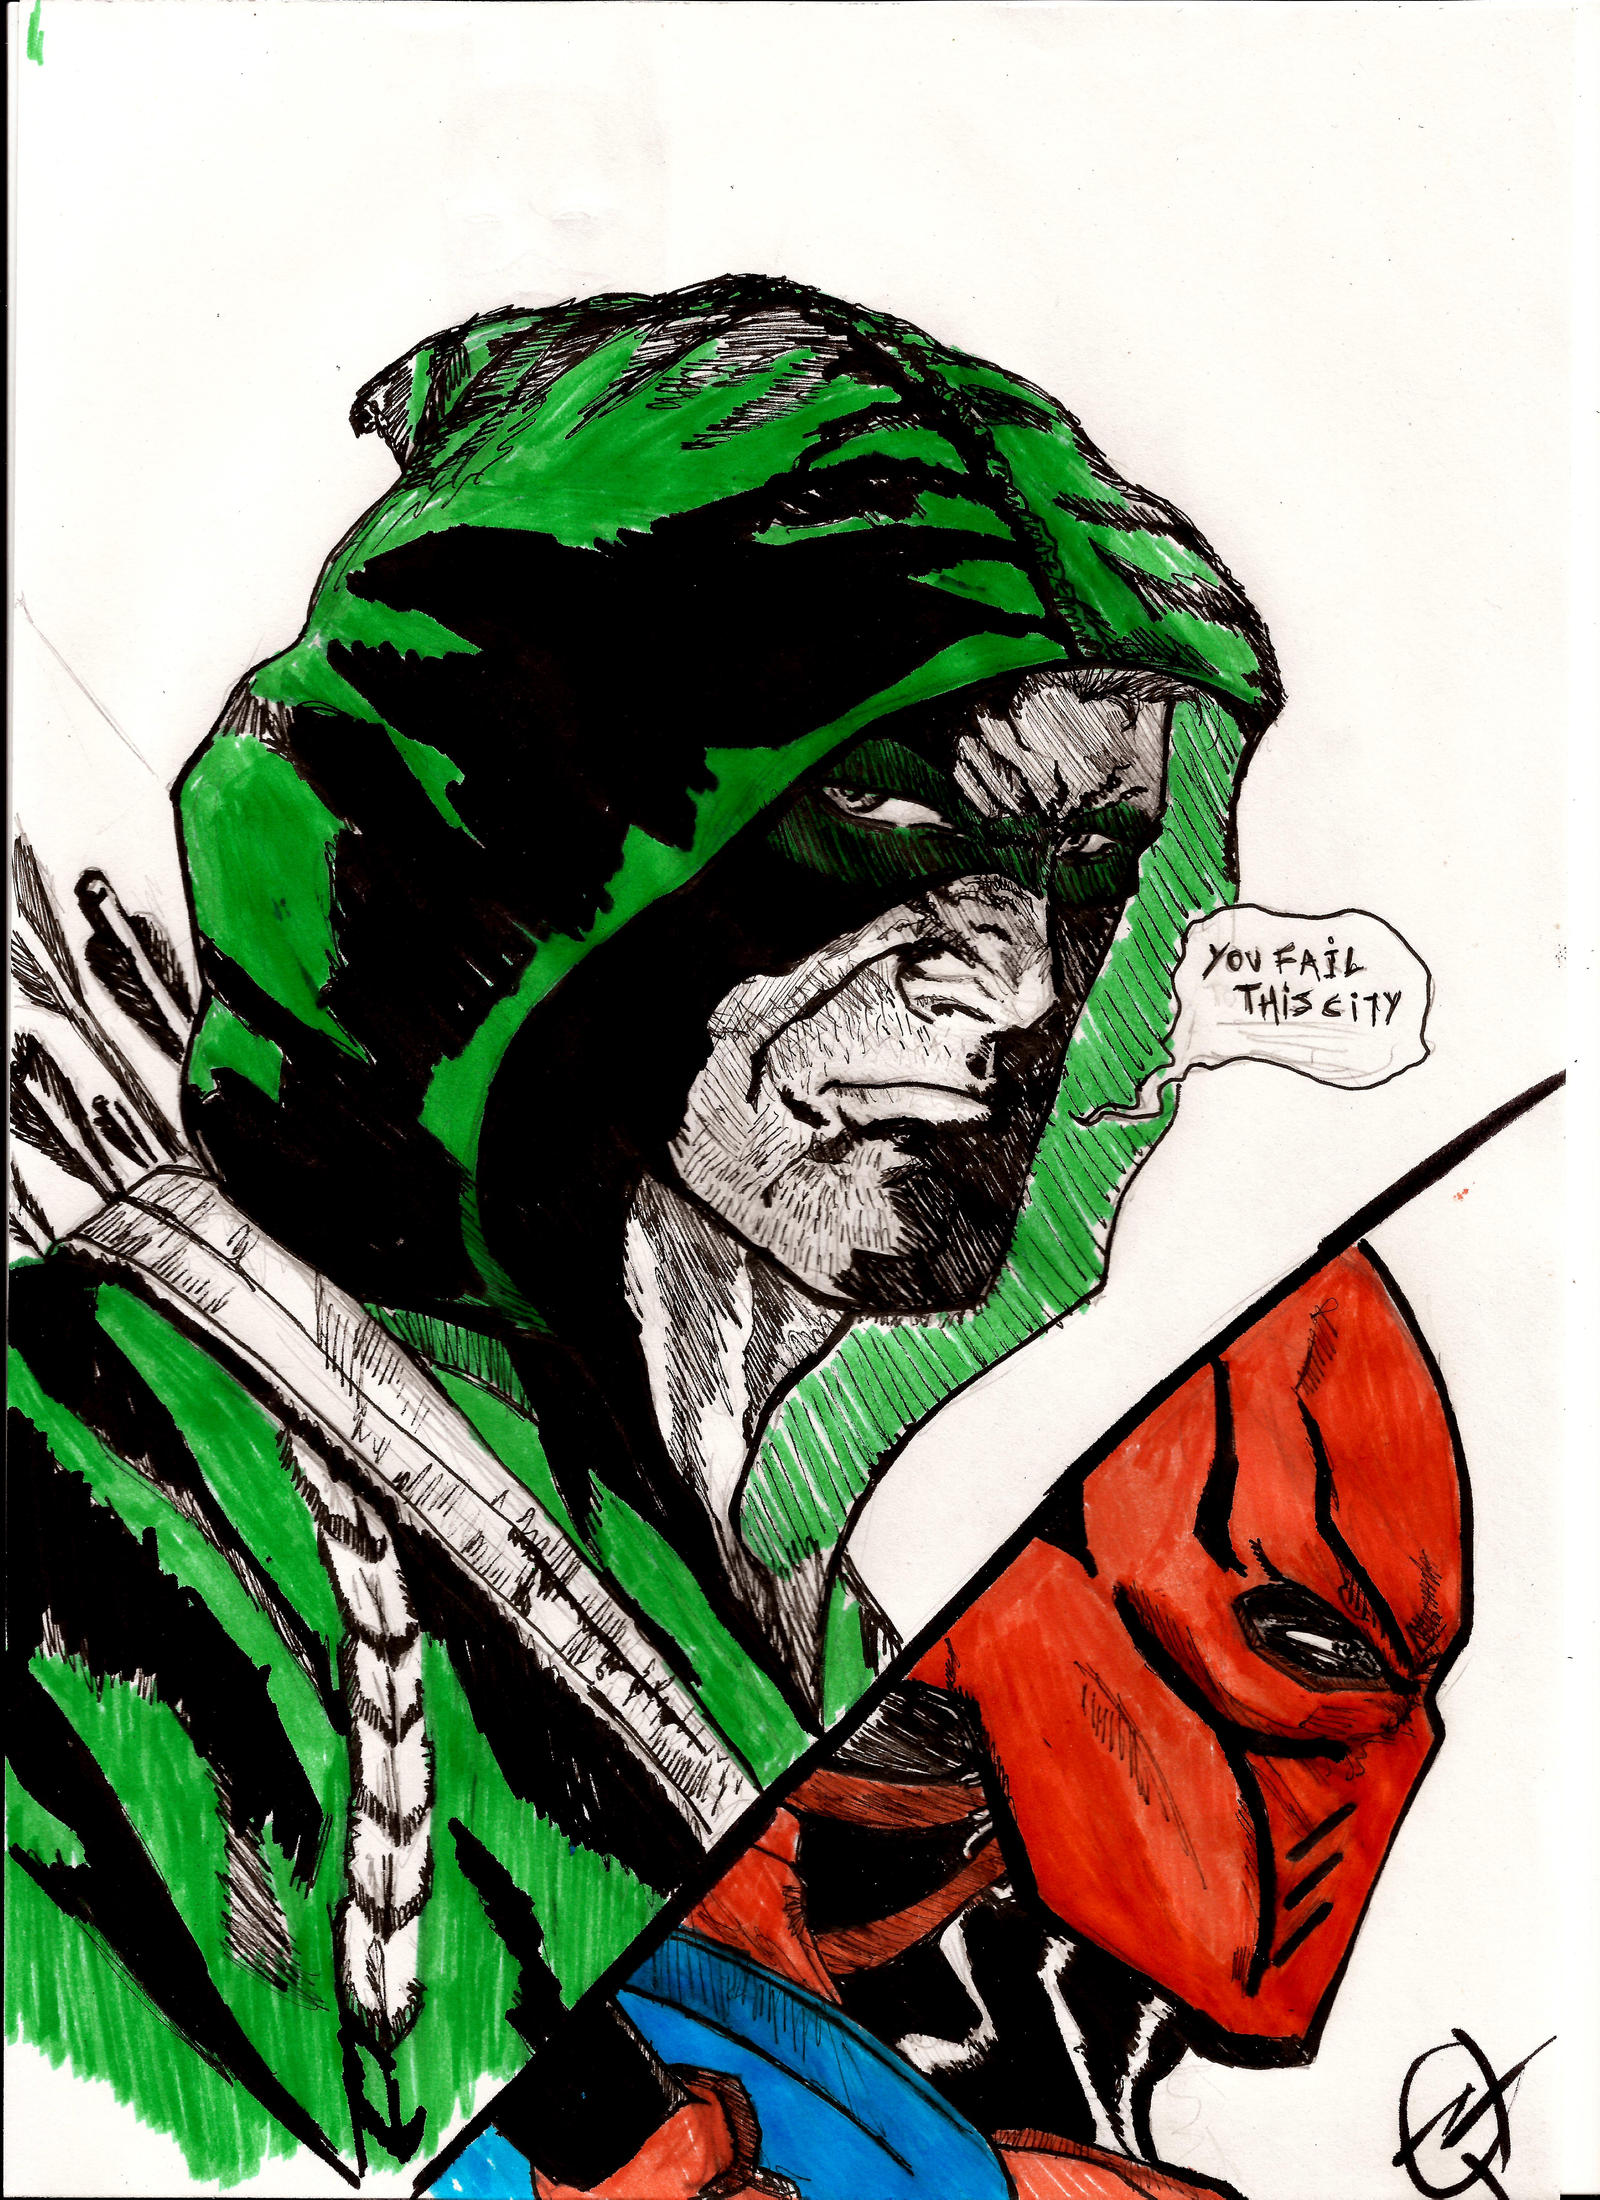 You Fail This City..Green Arrow Quick Doodle by nic011